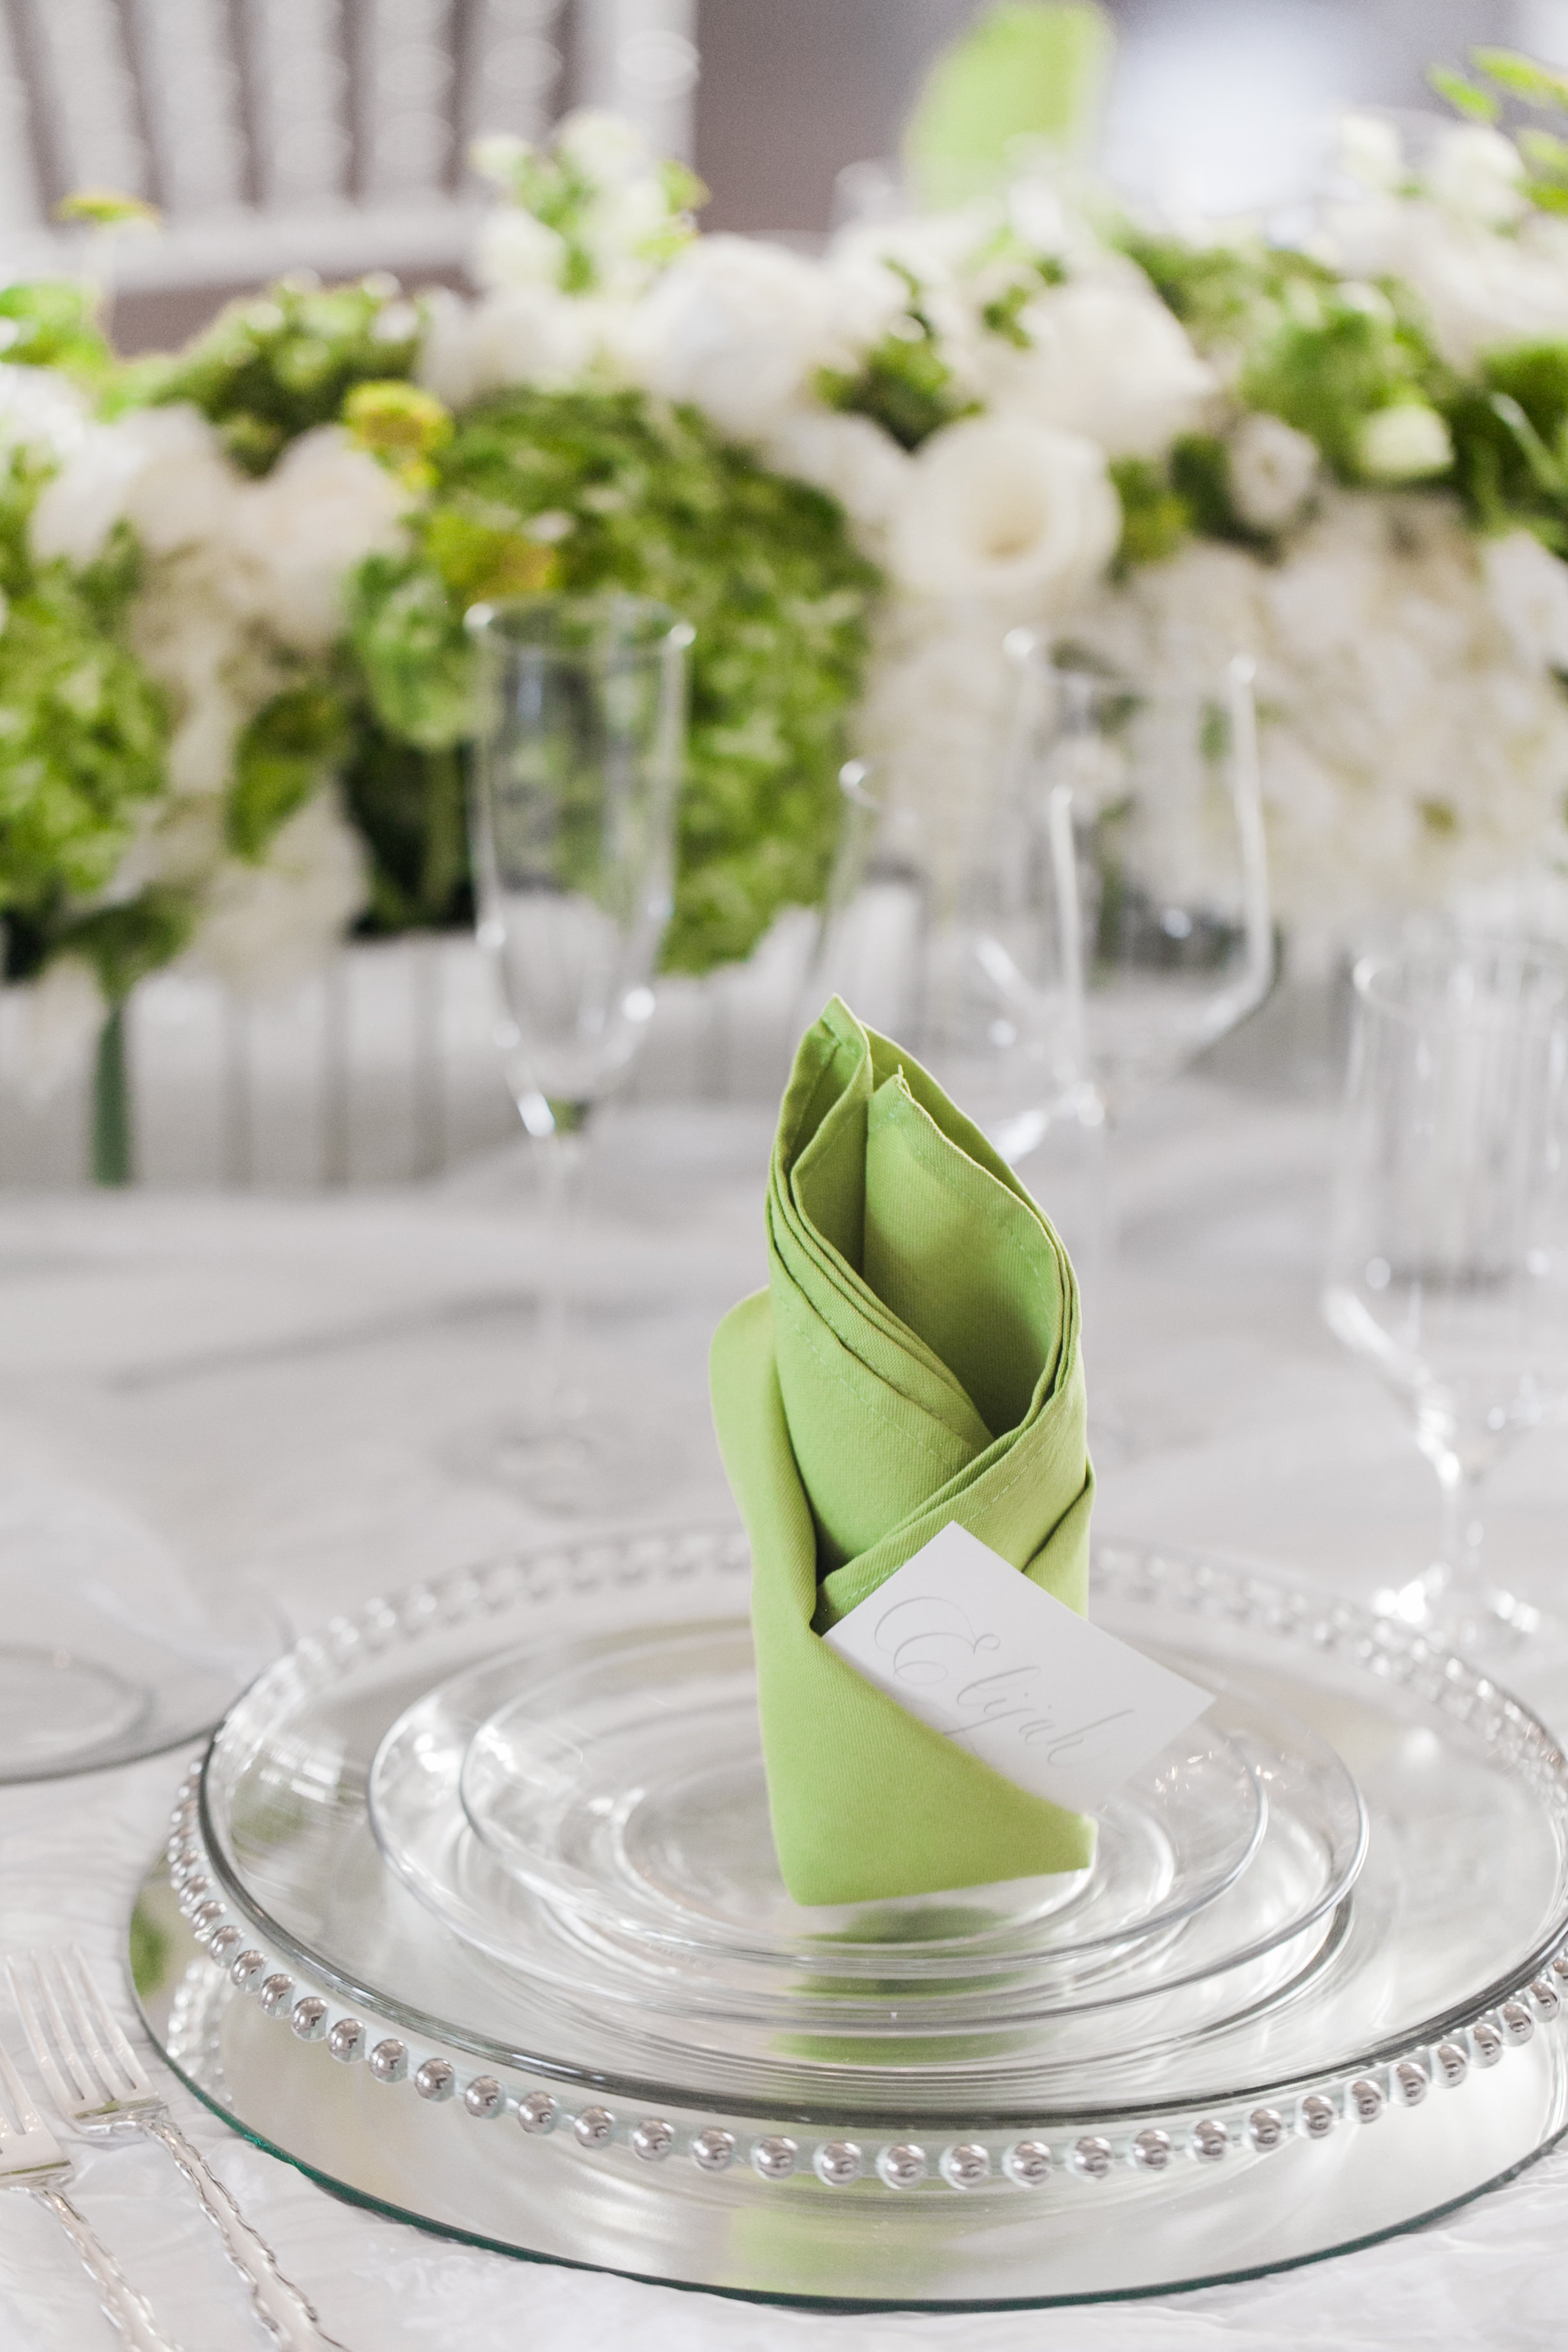 Table setting with green accent napkins and stunning glass charges for a wedding designed by Magnificent Moments Weddings